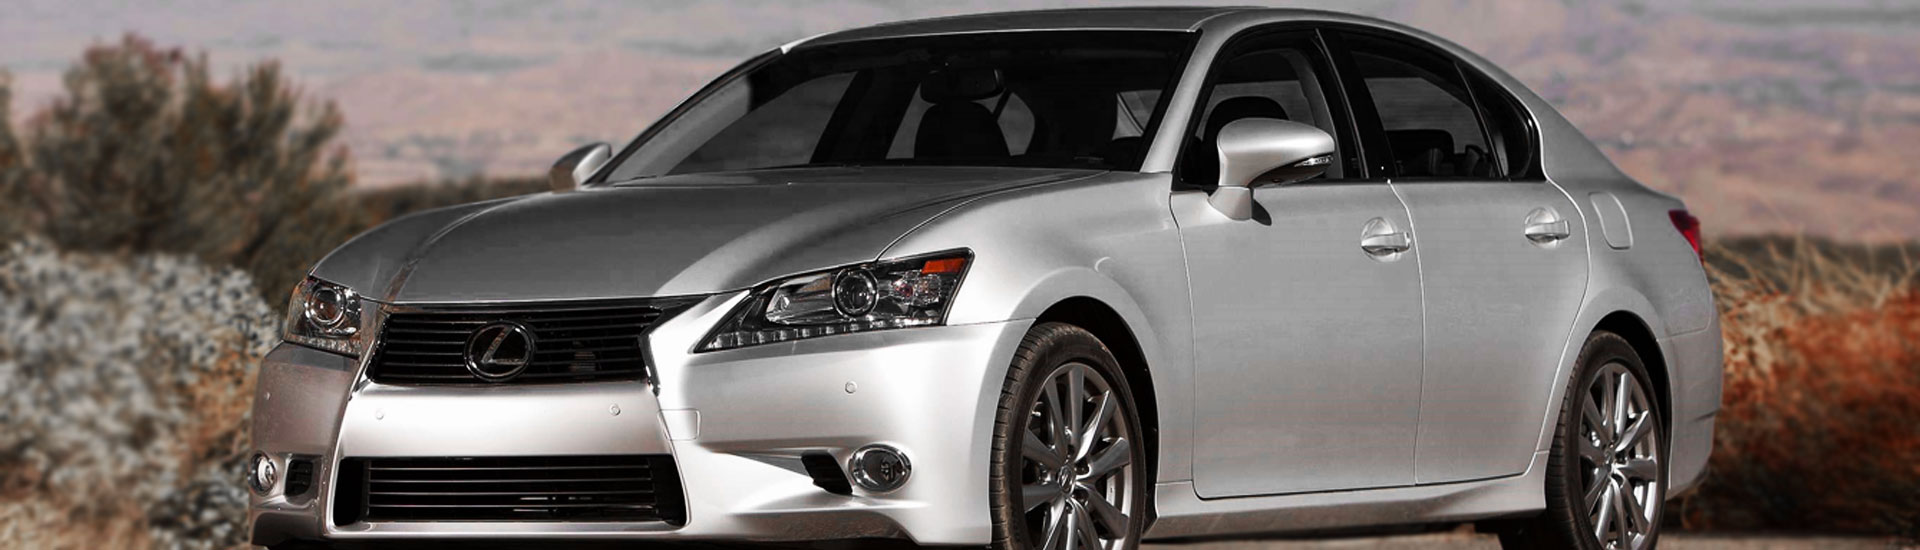 Lexus GS Window Tint